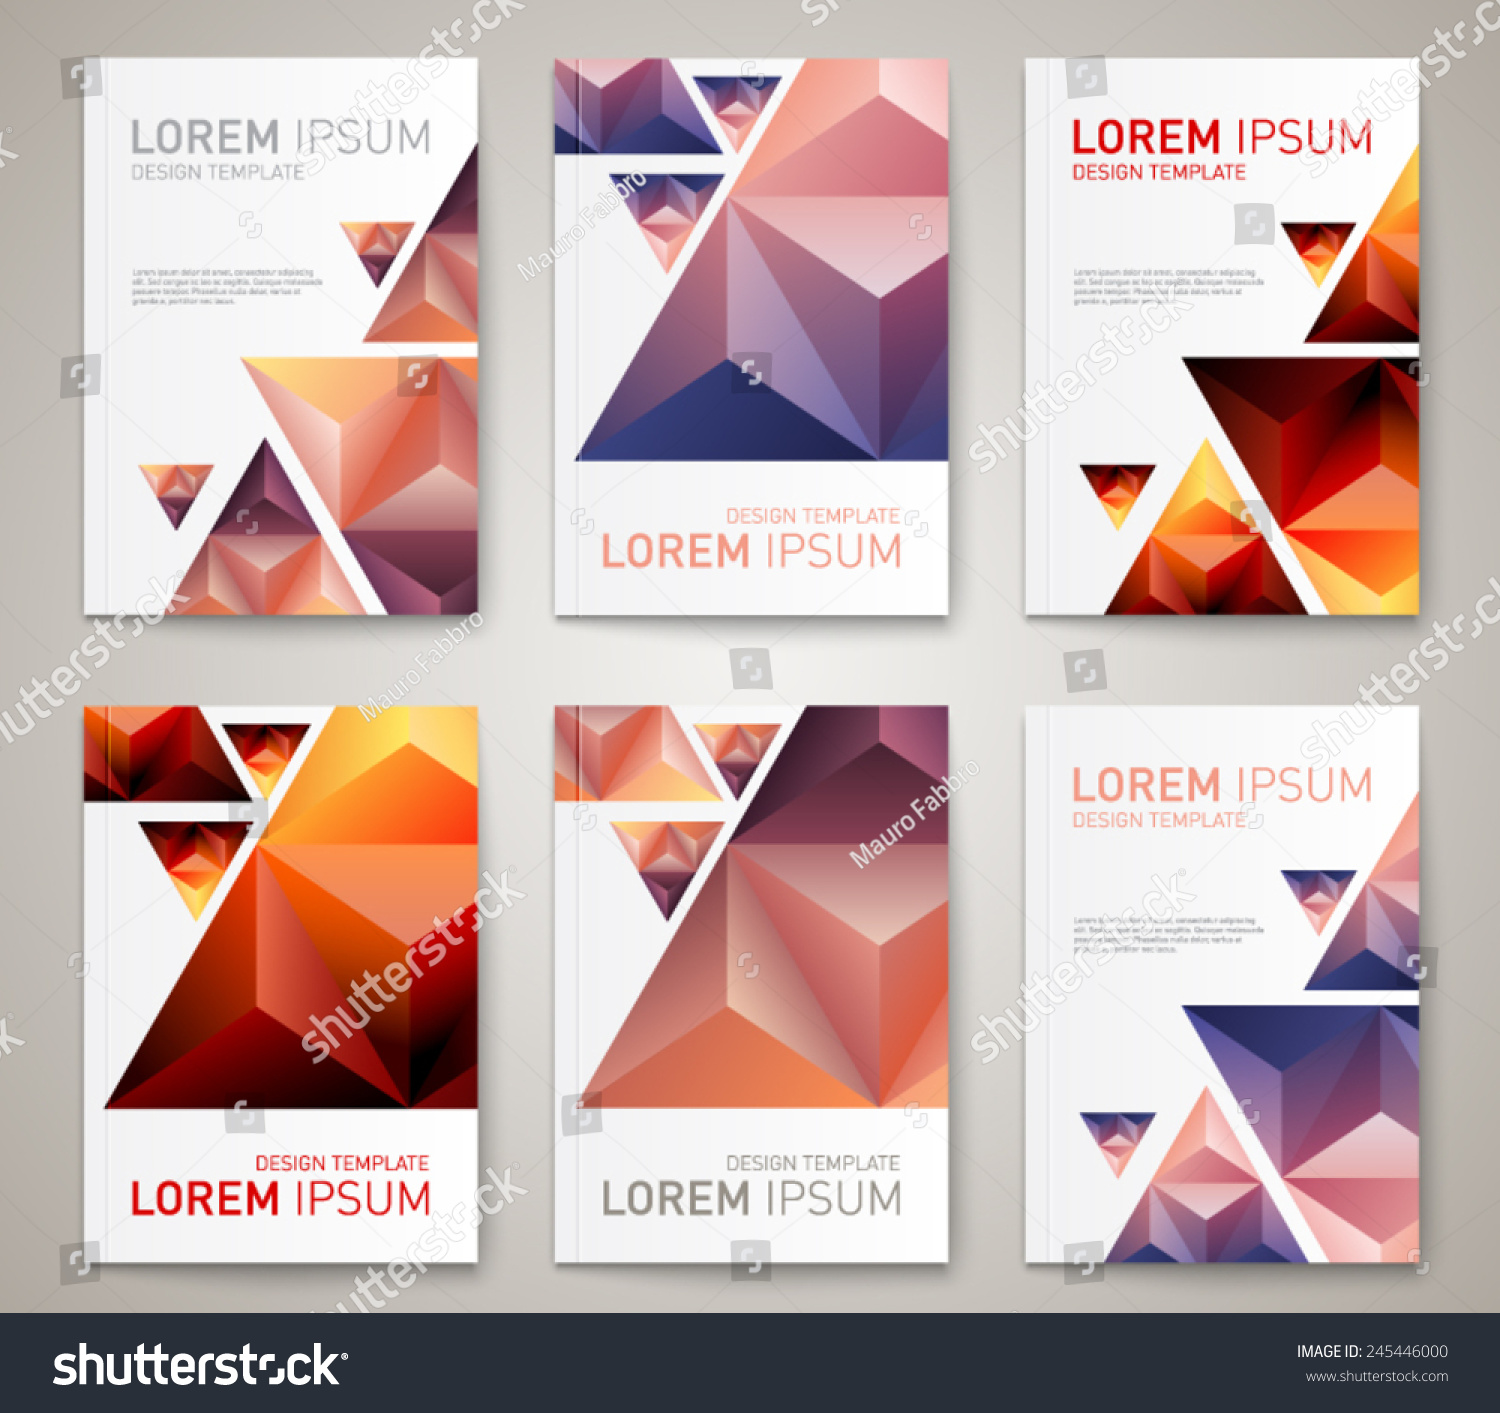 set modern abstract brochure flyer report stock vector  set of modern abstract brochure flyer report design layout template clean style